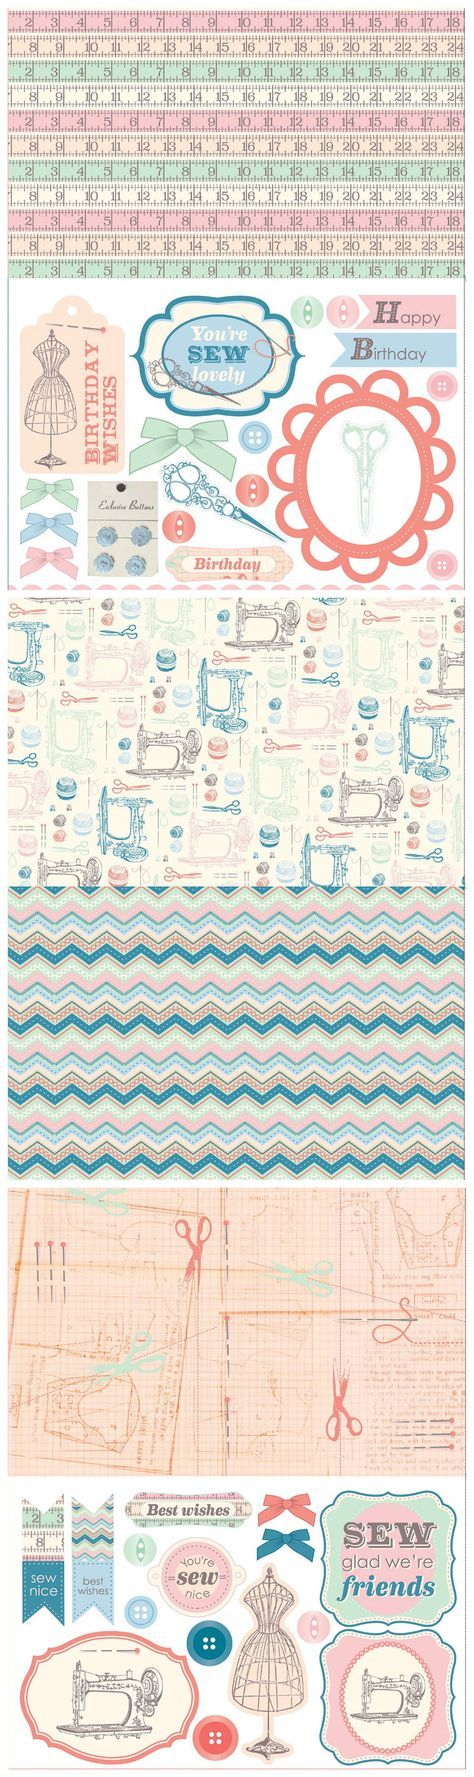 Find vintage inspiration with our free printable sewing papers!